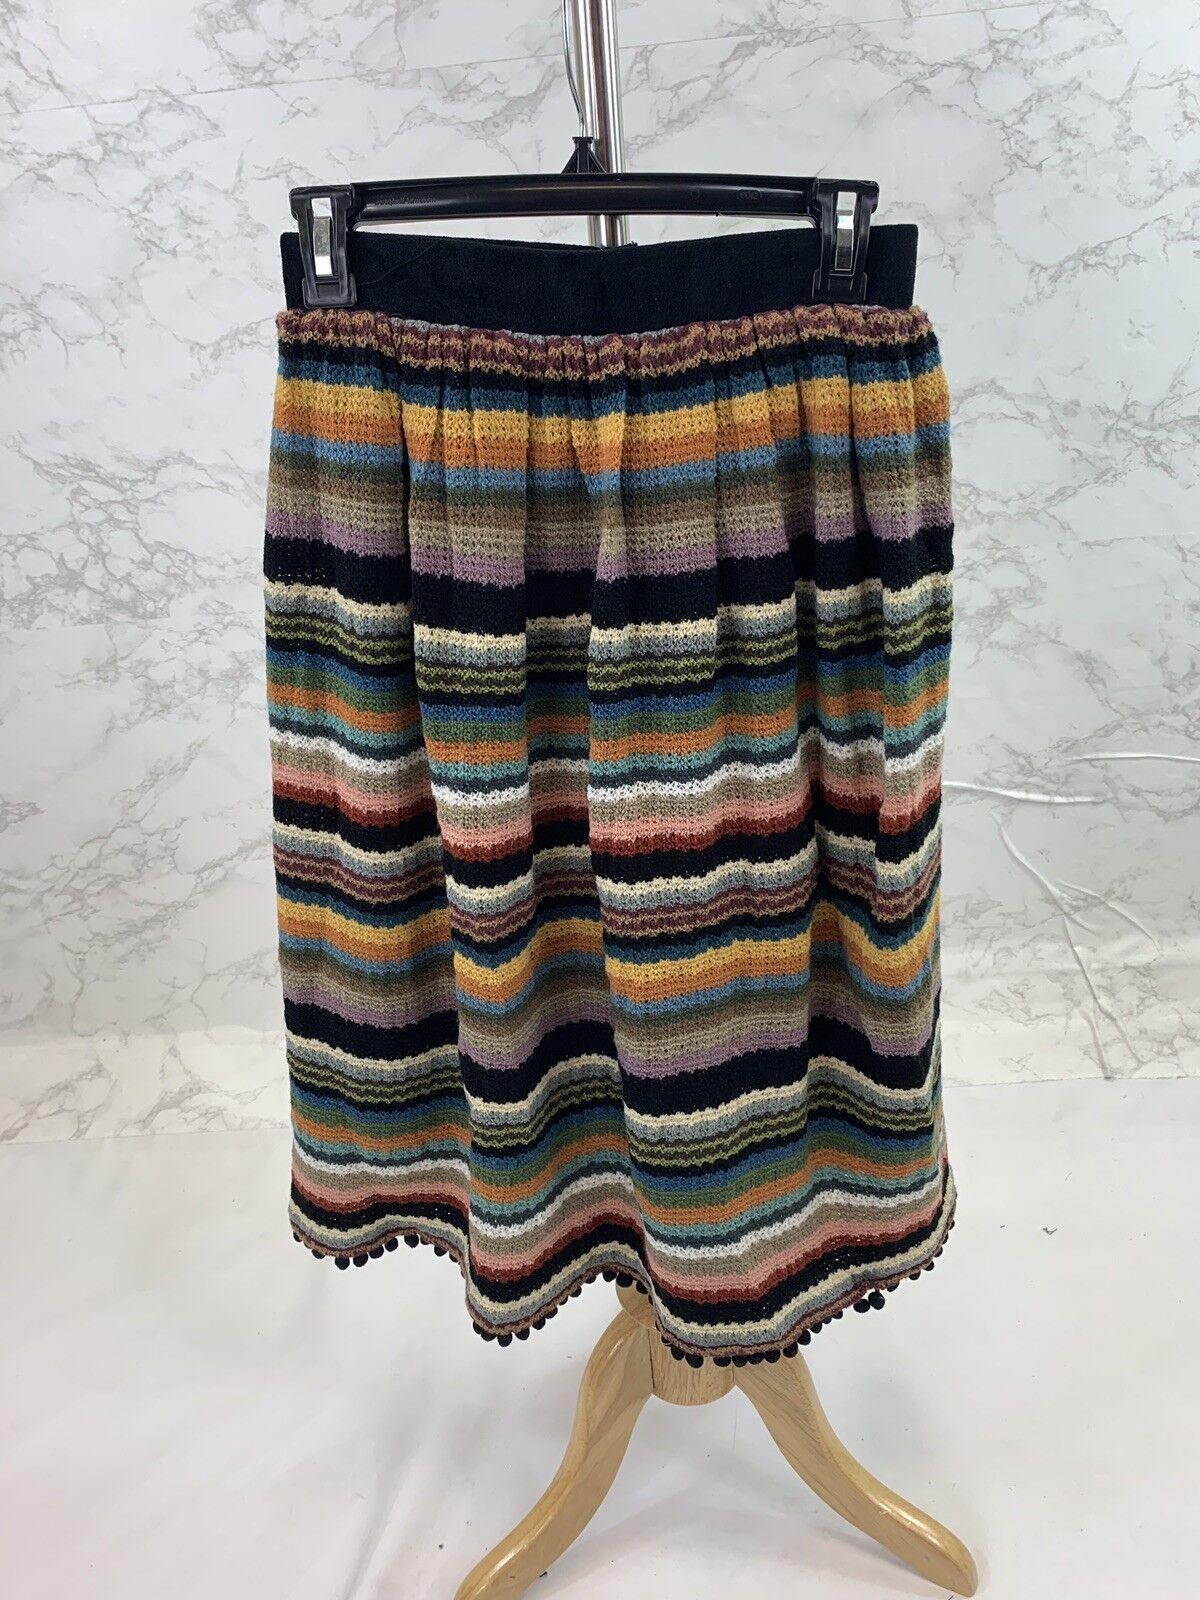 Anthropologie Eri + Ali Women's Knitted Multi color Skirt Size 2